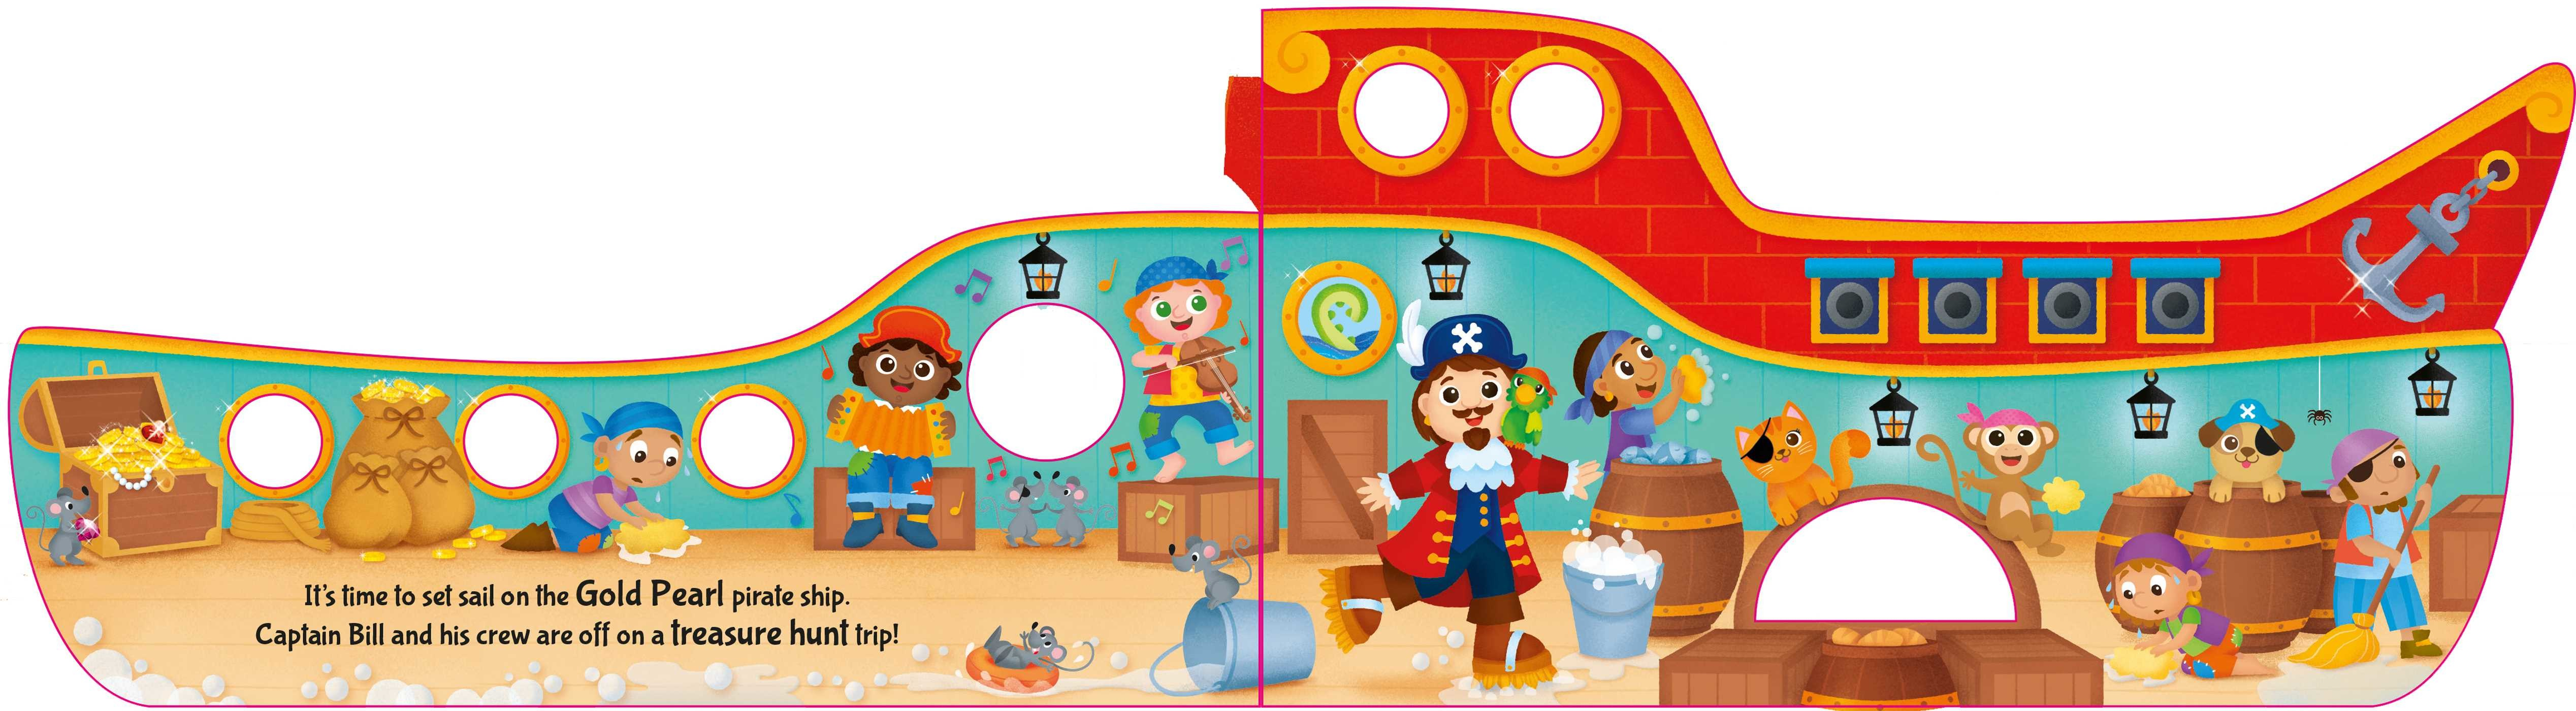 Pirate ship 9781499880656.in01